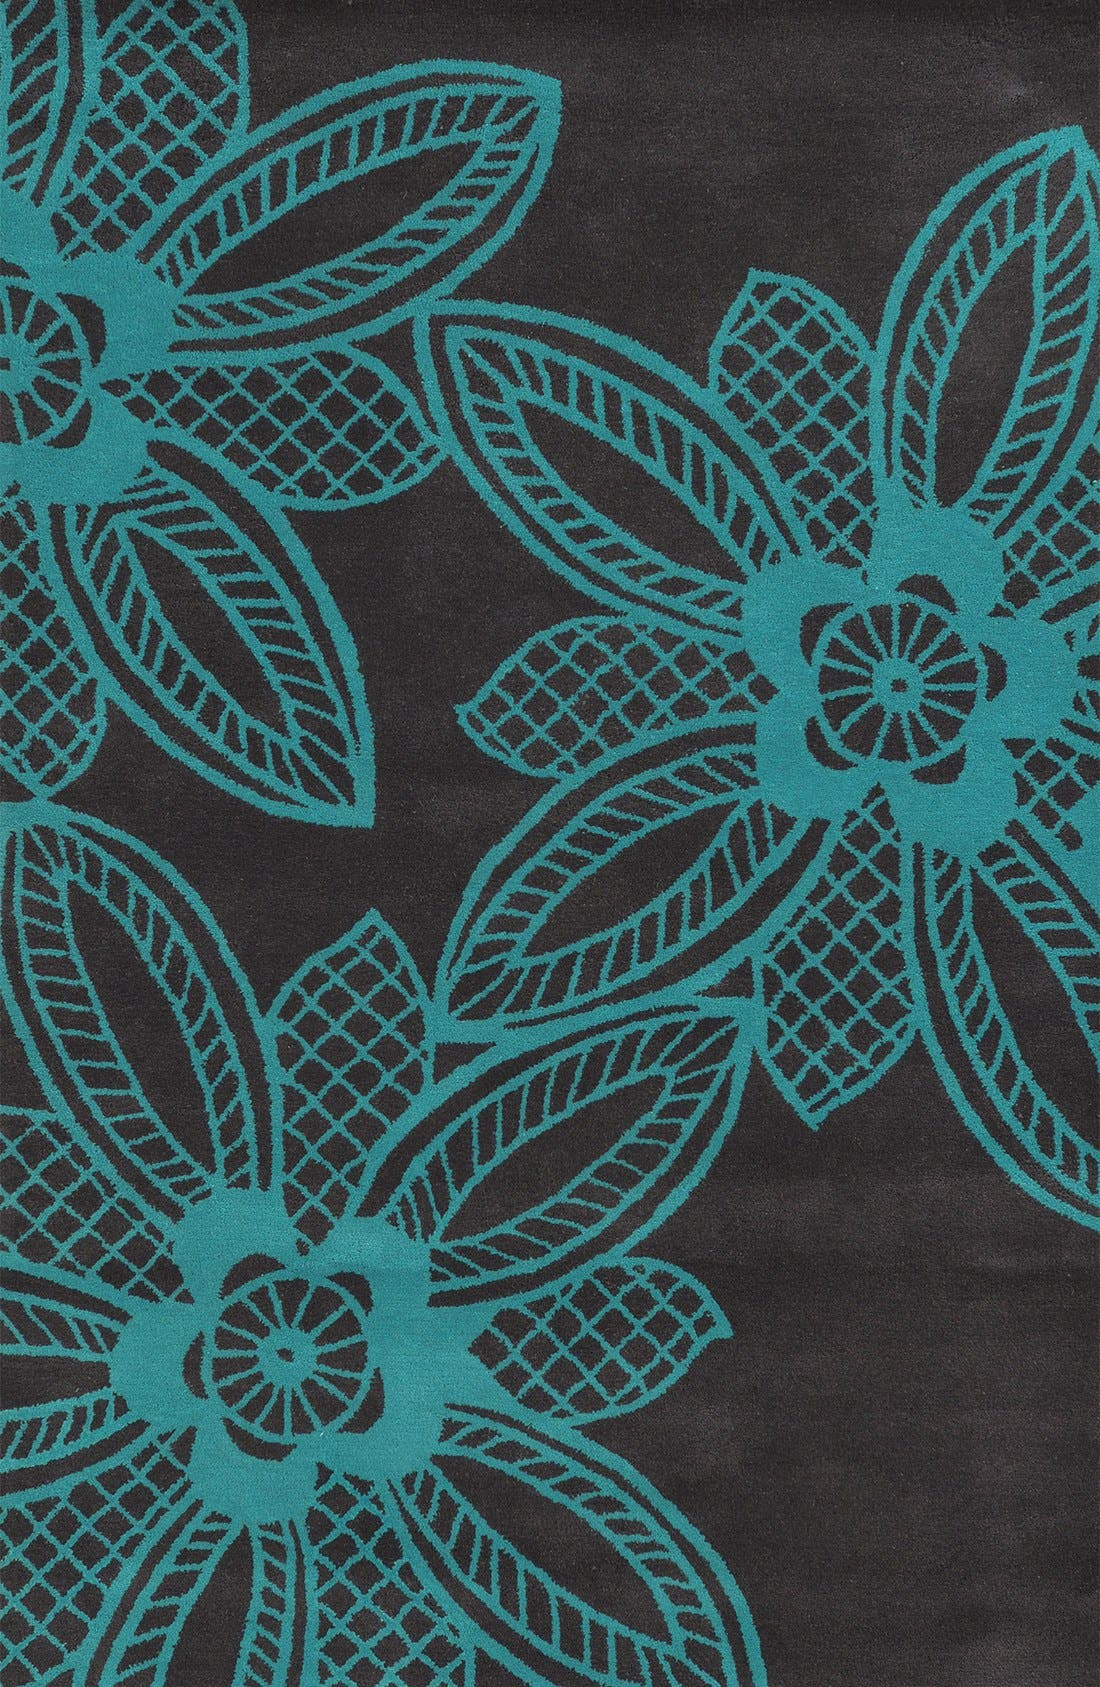 Alternate Image 1 Selected - Rizzy Home 'Lacey Jane' Hand Tufted Wool Area Rug